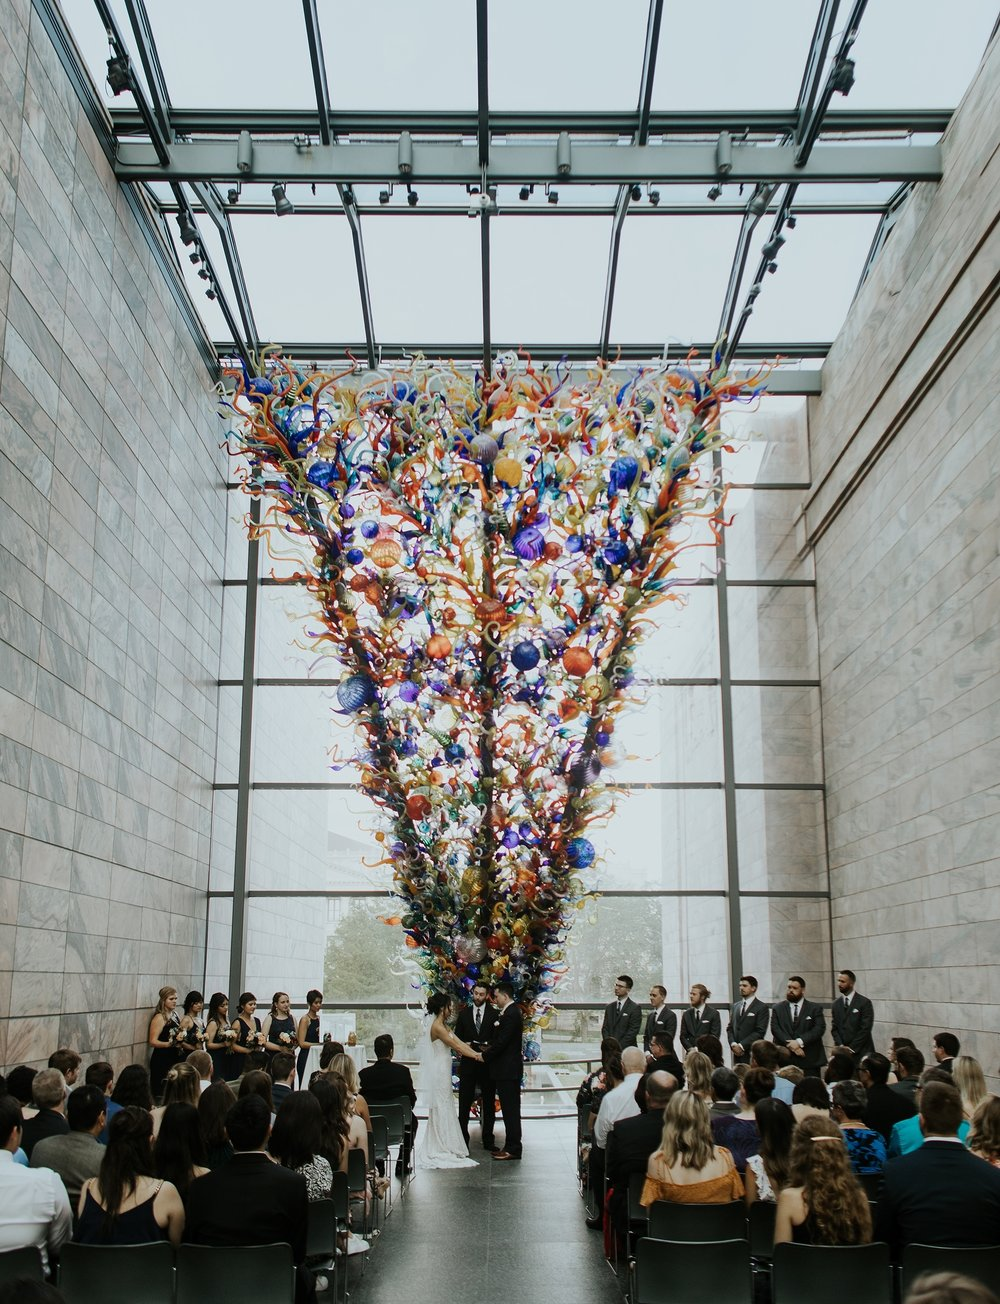 Whimsical Joslyn Art Museum Wedding by Trin Jensen - Omaha Nebraska Wedding Photographer_0015.jpg